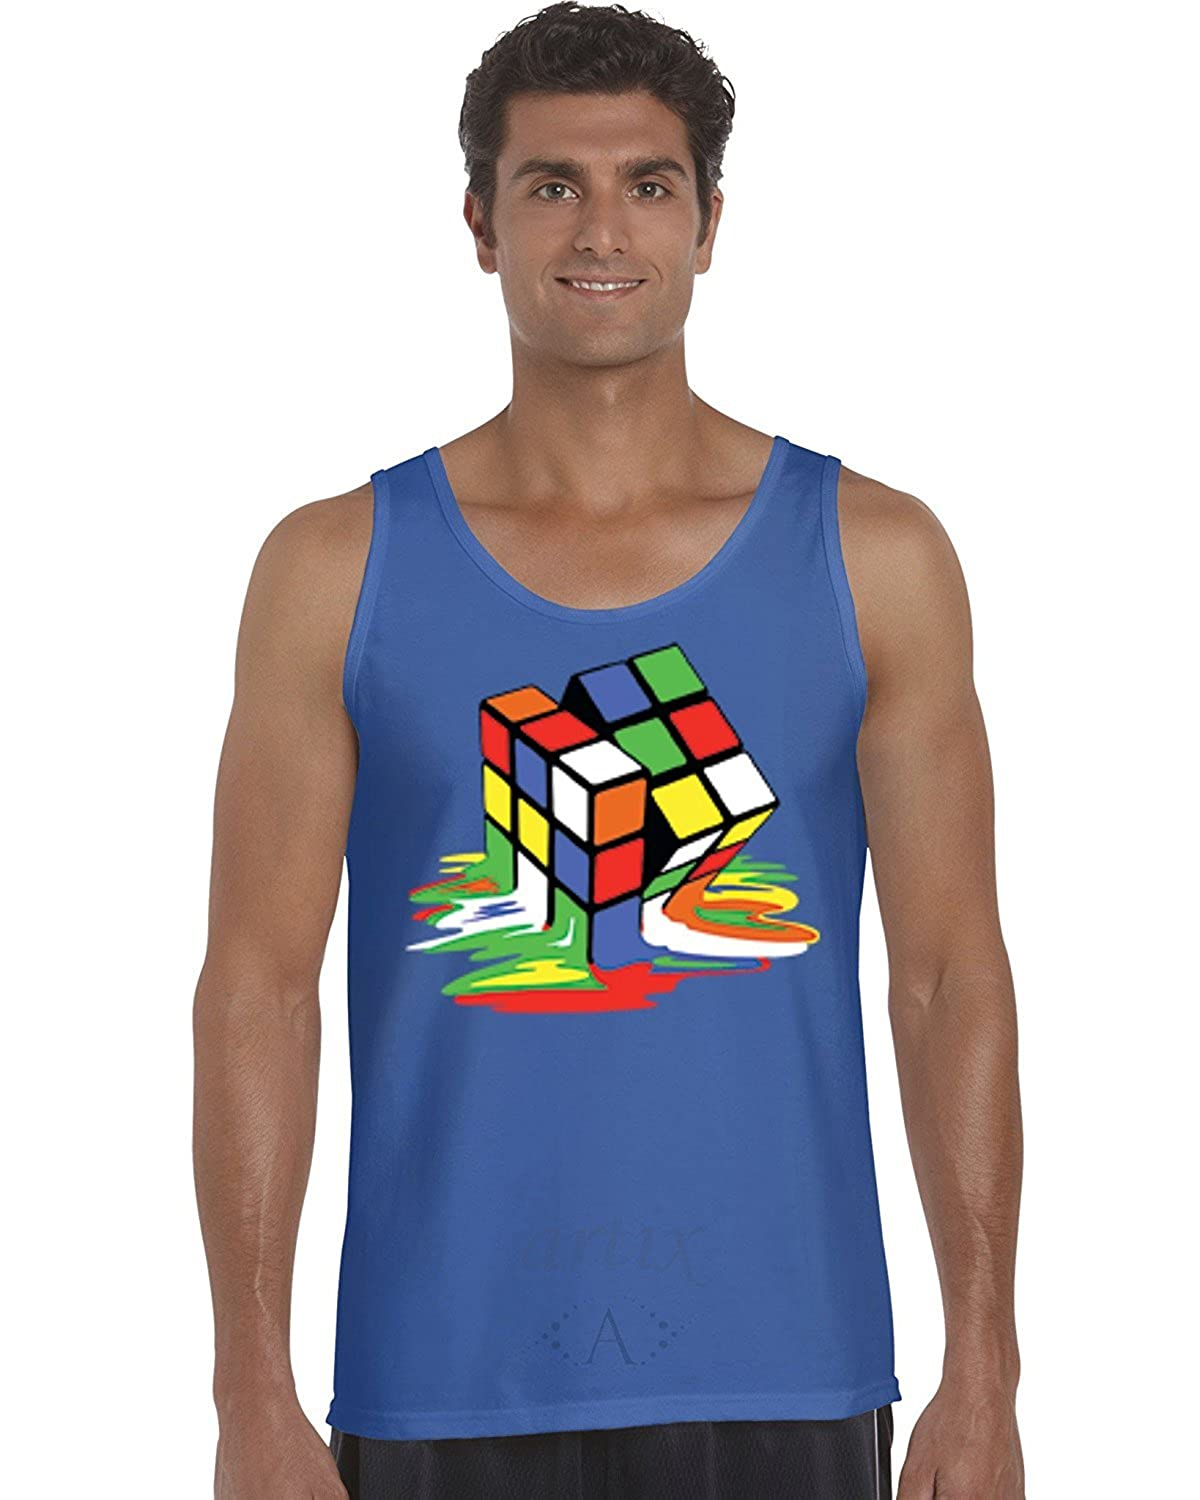 Melting Rubik`s Cube Men Tank Top Large Royal Blue Artix A